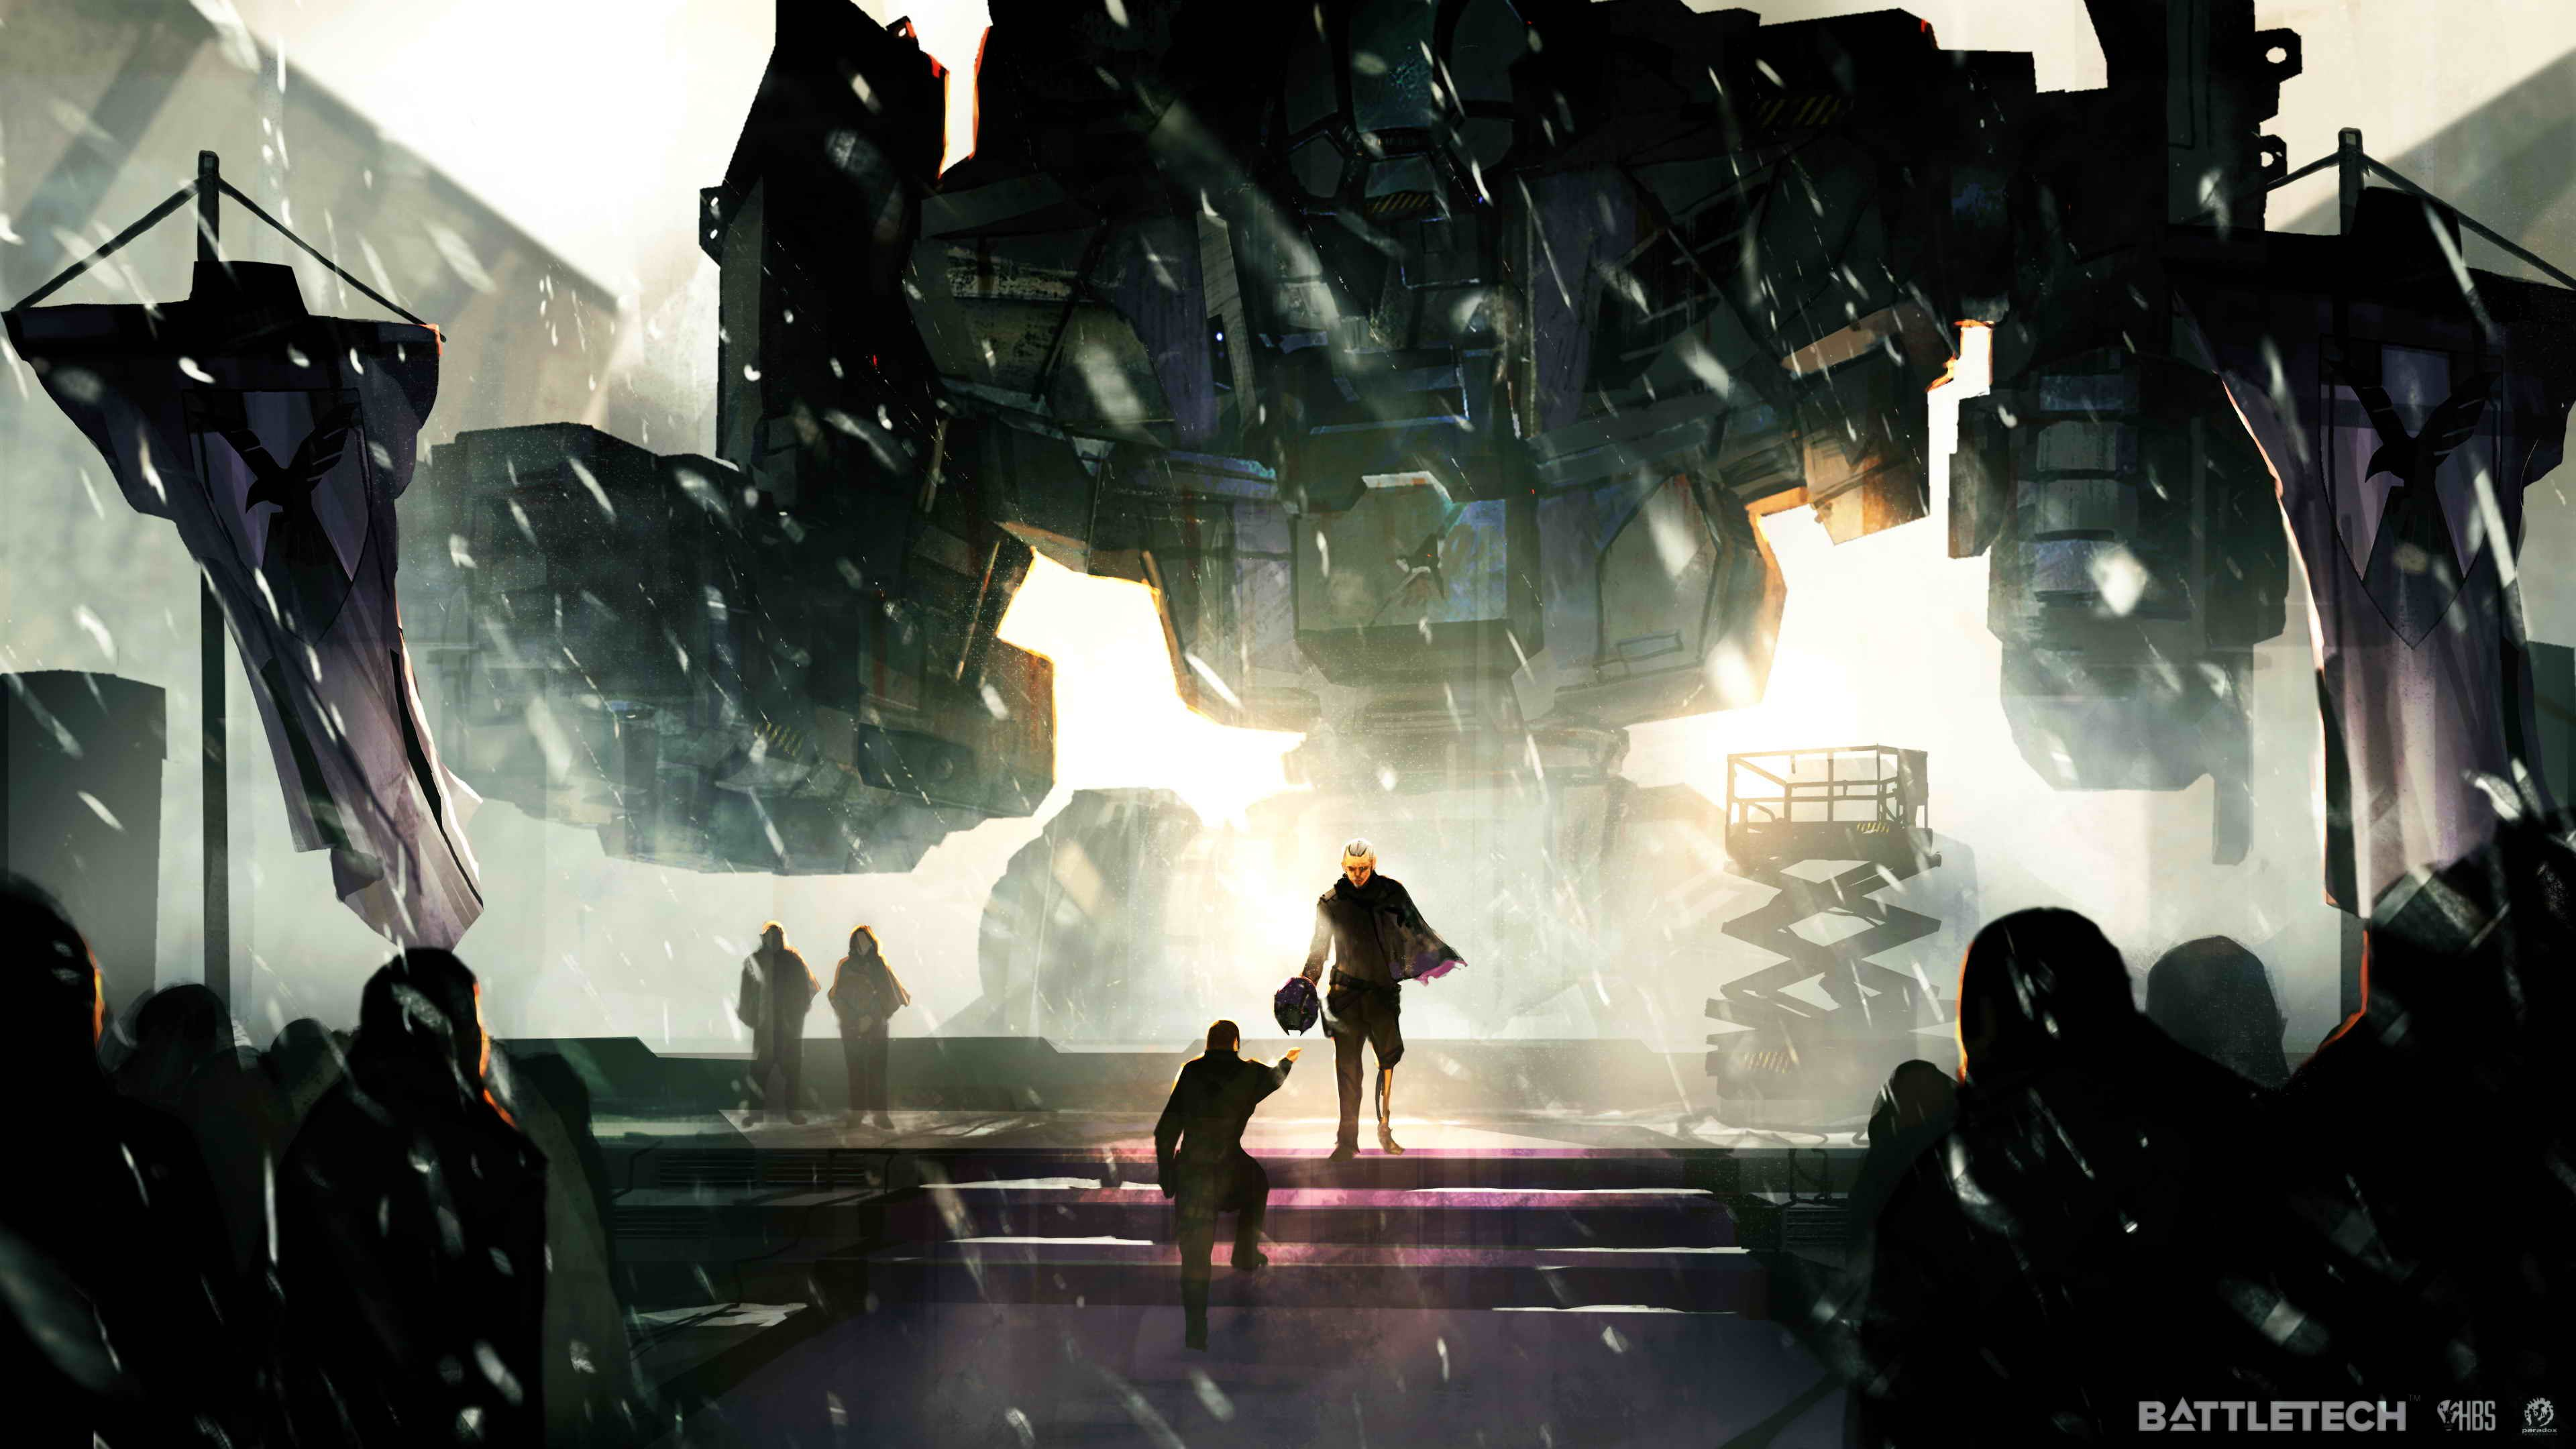 Pin by Jessica on PC RPG Futuristic Pc games